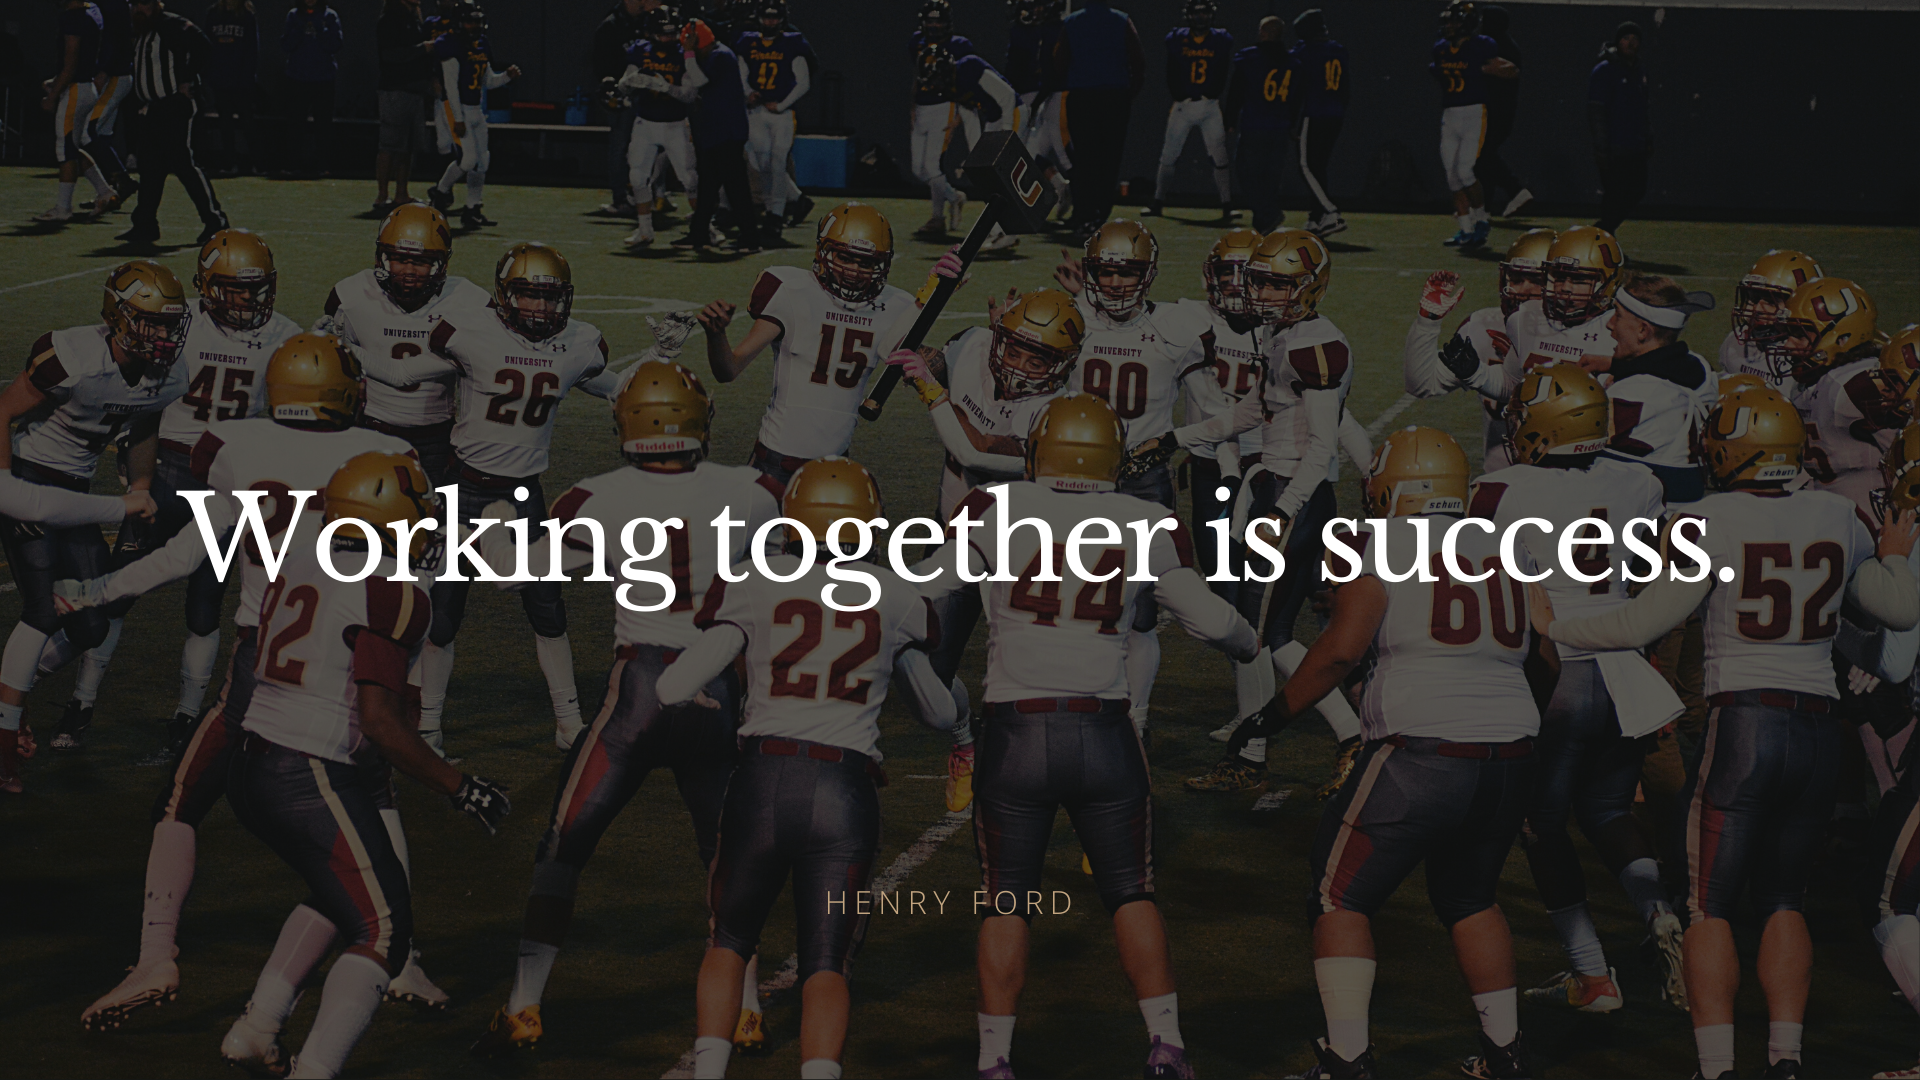 Working together is success.